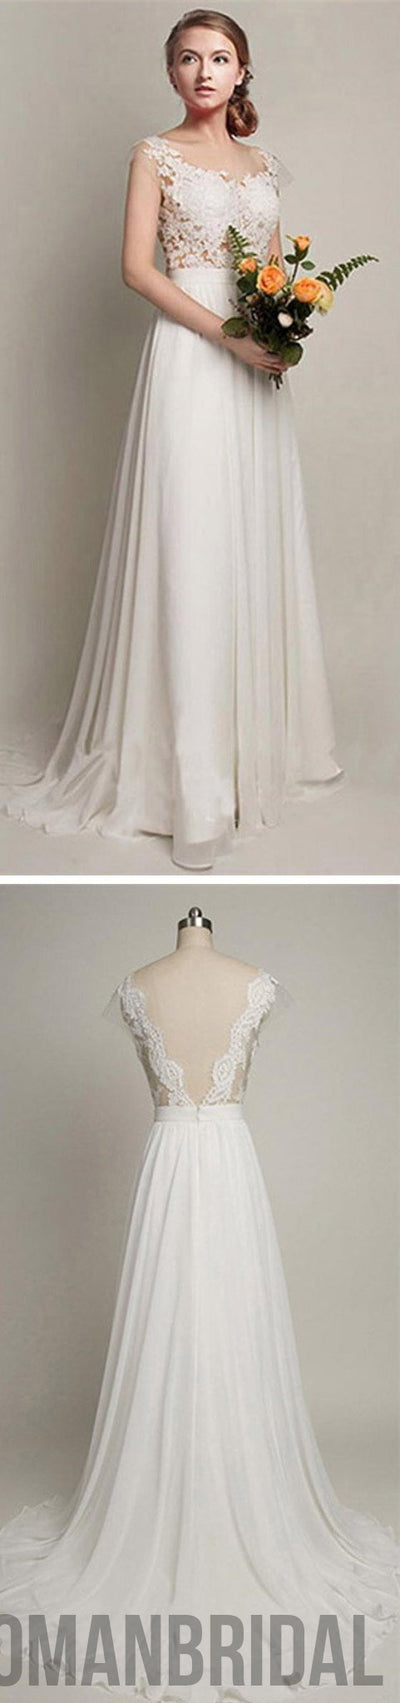 Attractive 2018 Simple Long A Line V Back Lace Wedding Dresses, Chiffon Wedding Party Design Ideas